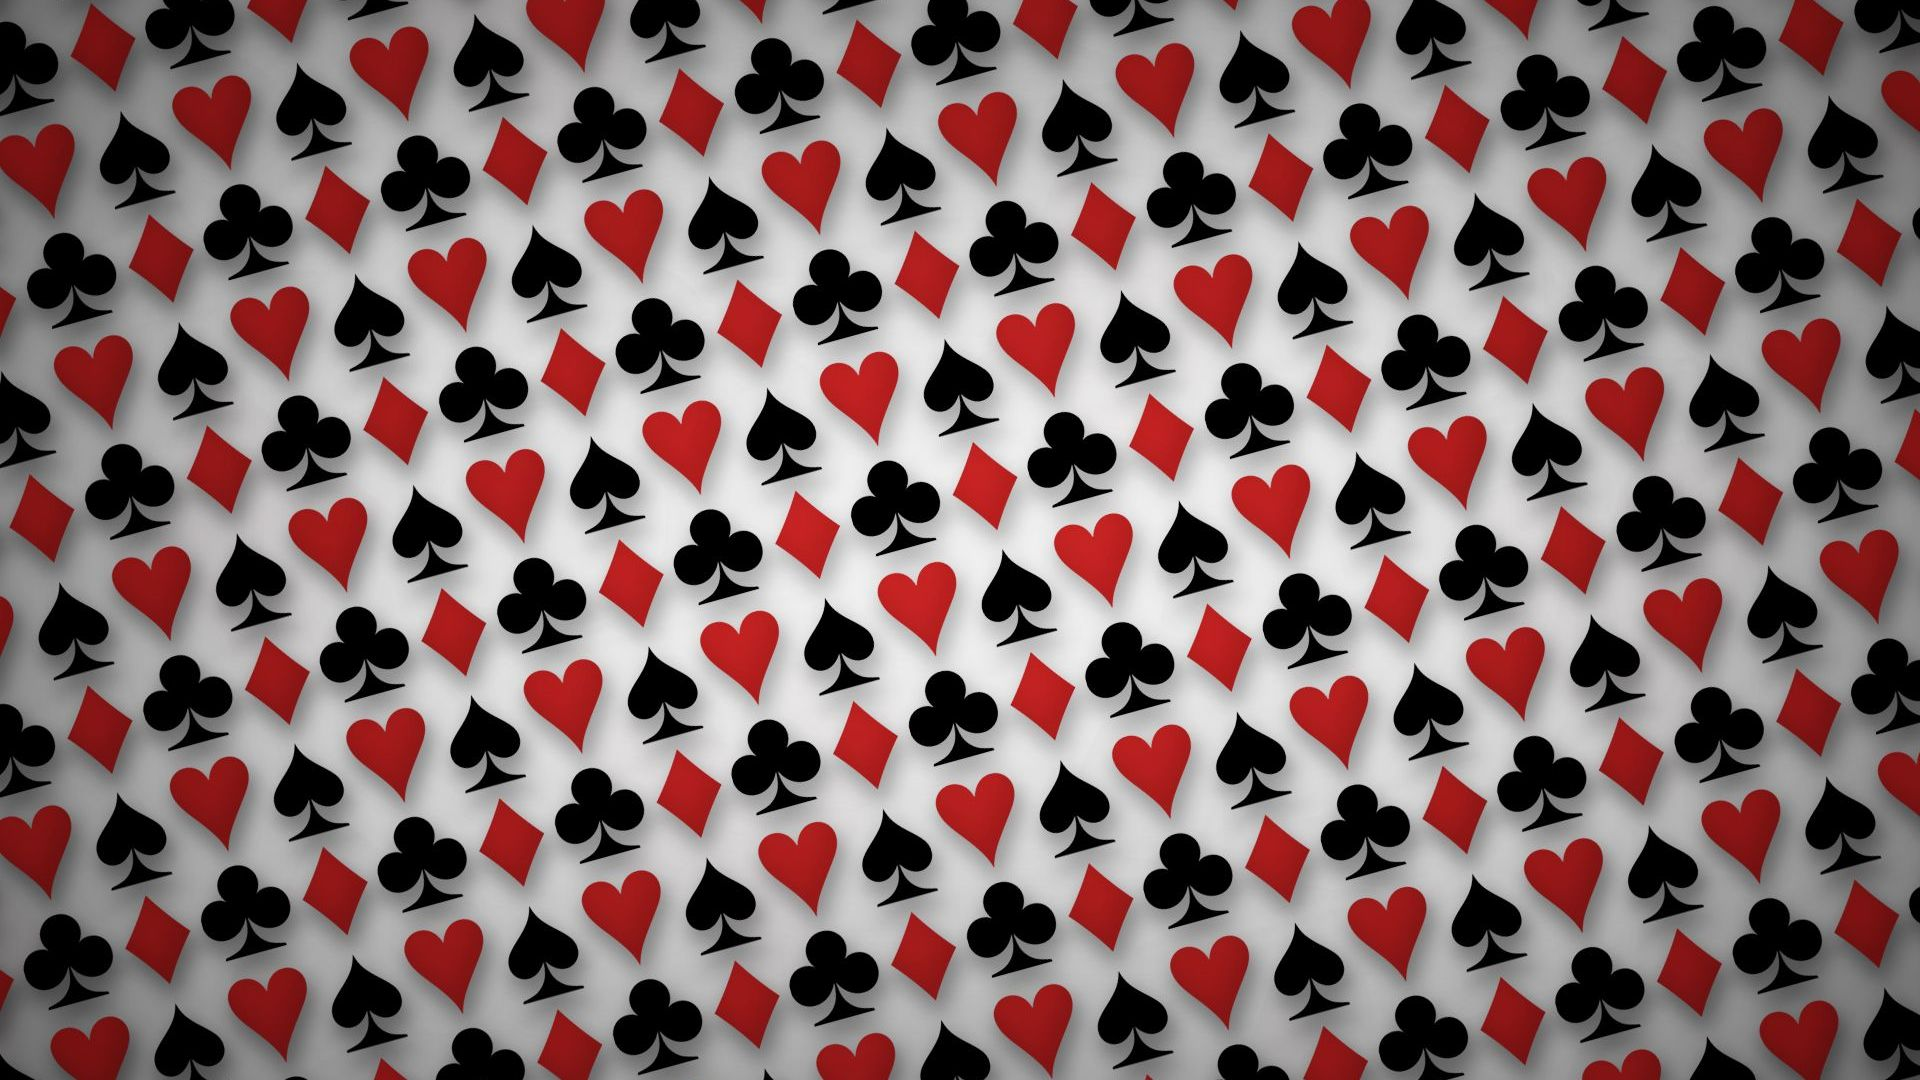 Playing cards symbols Wallpaper 10306 1920x1080